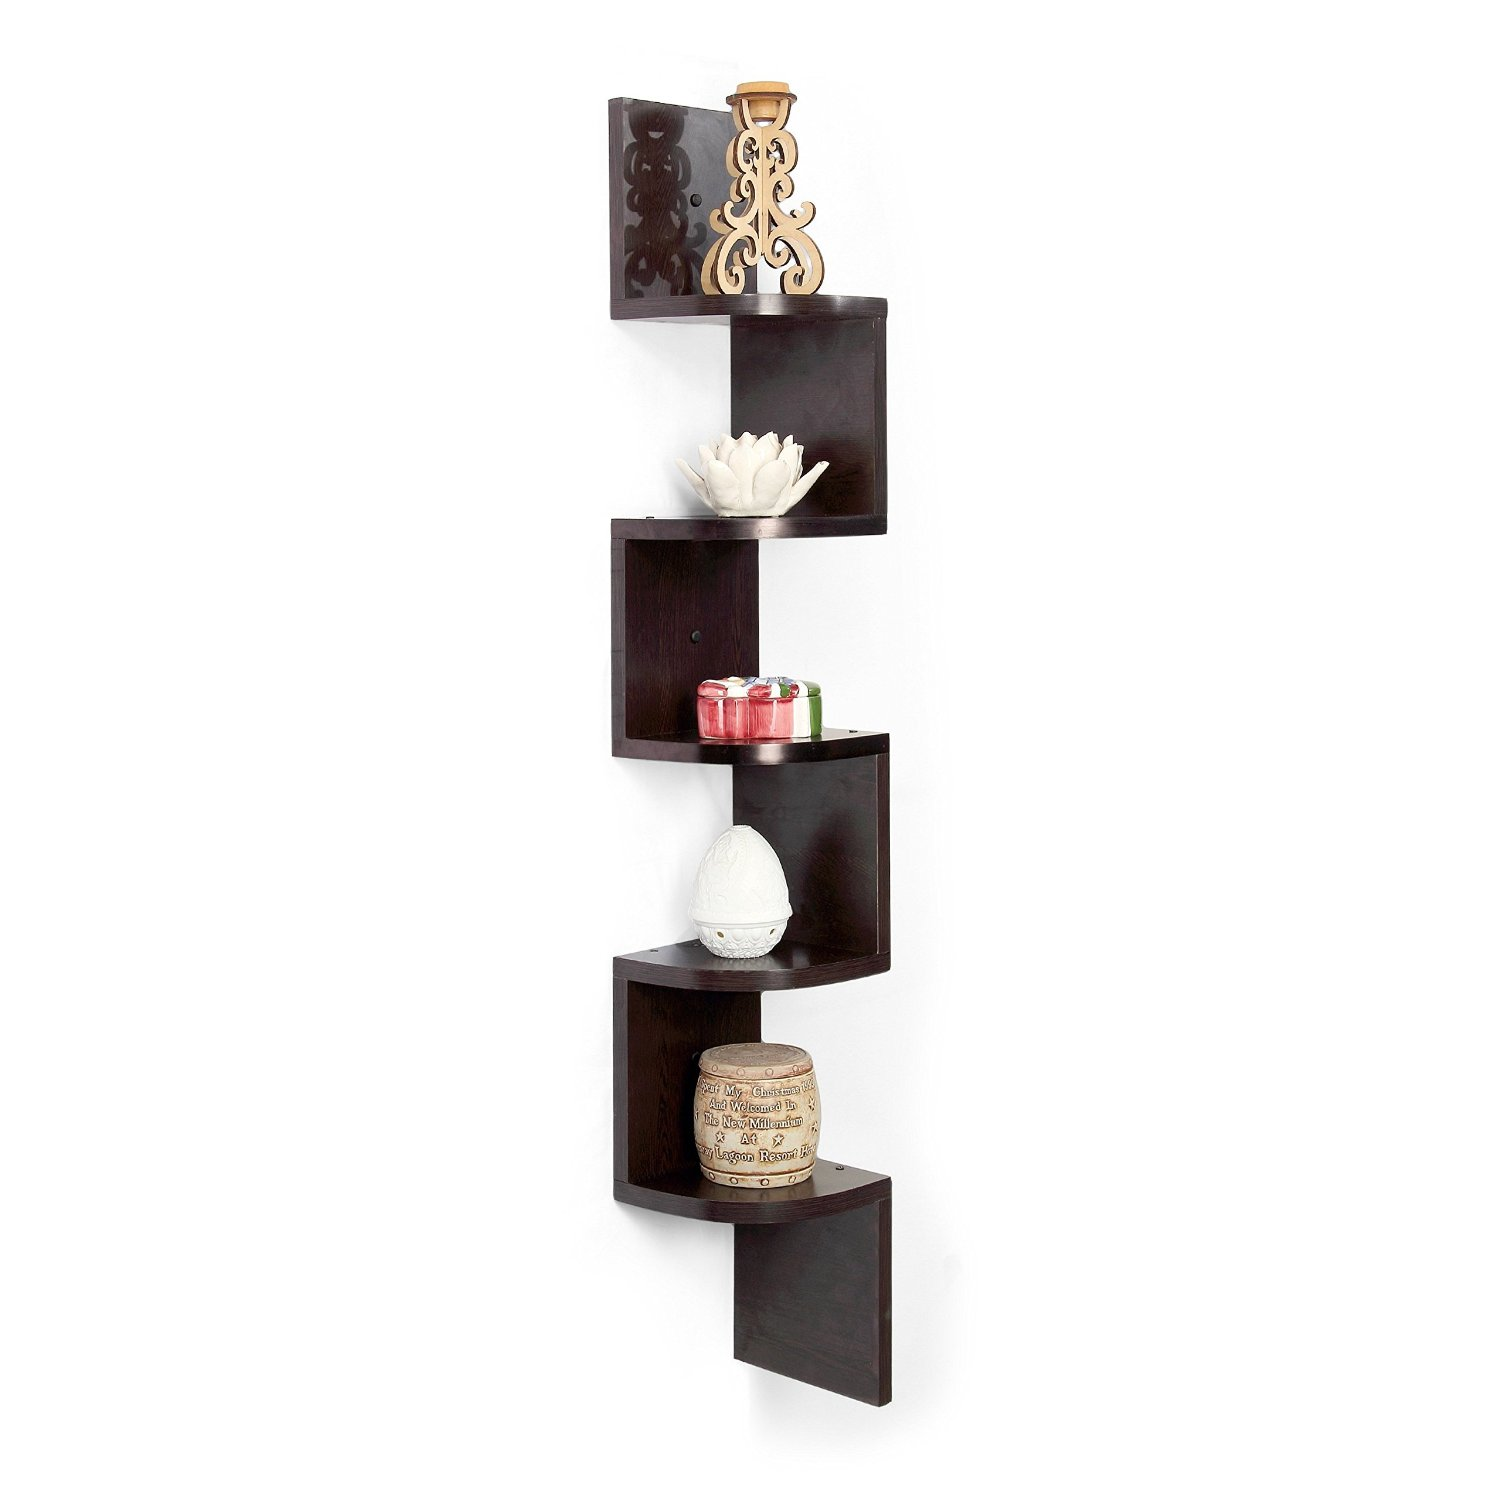 Forzza Vincent Corner Wall Shelf (Wenge) for Rs 799 (54% off)